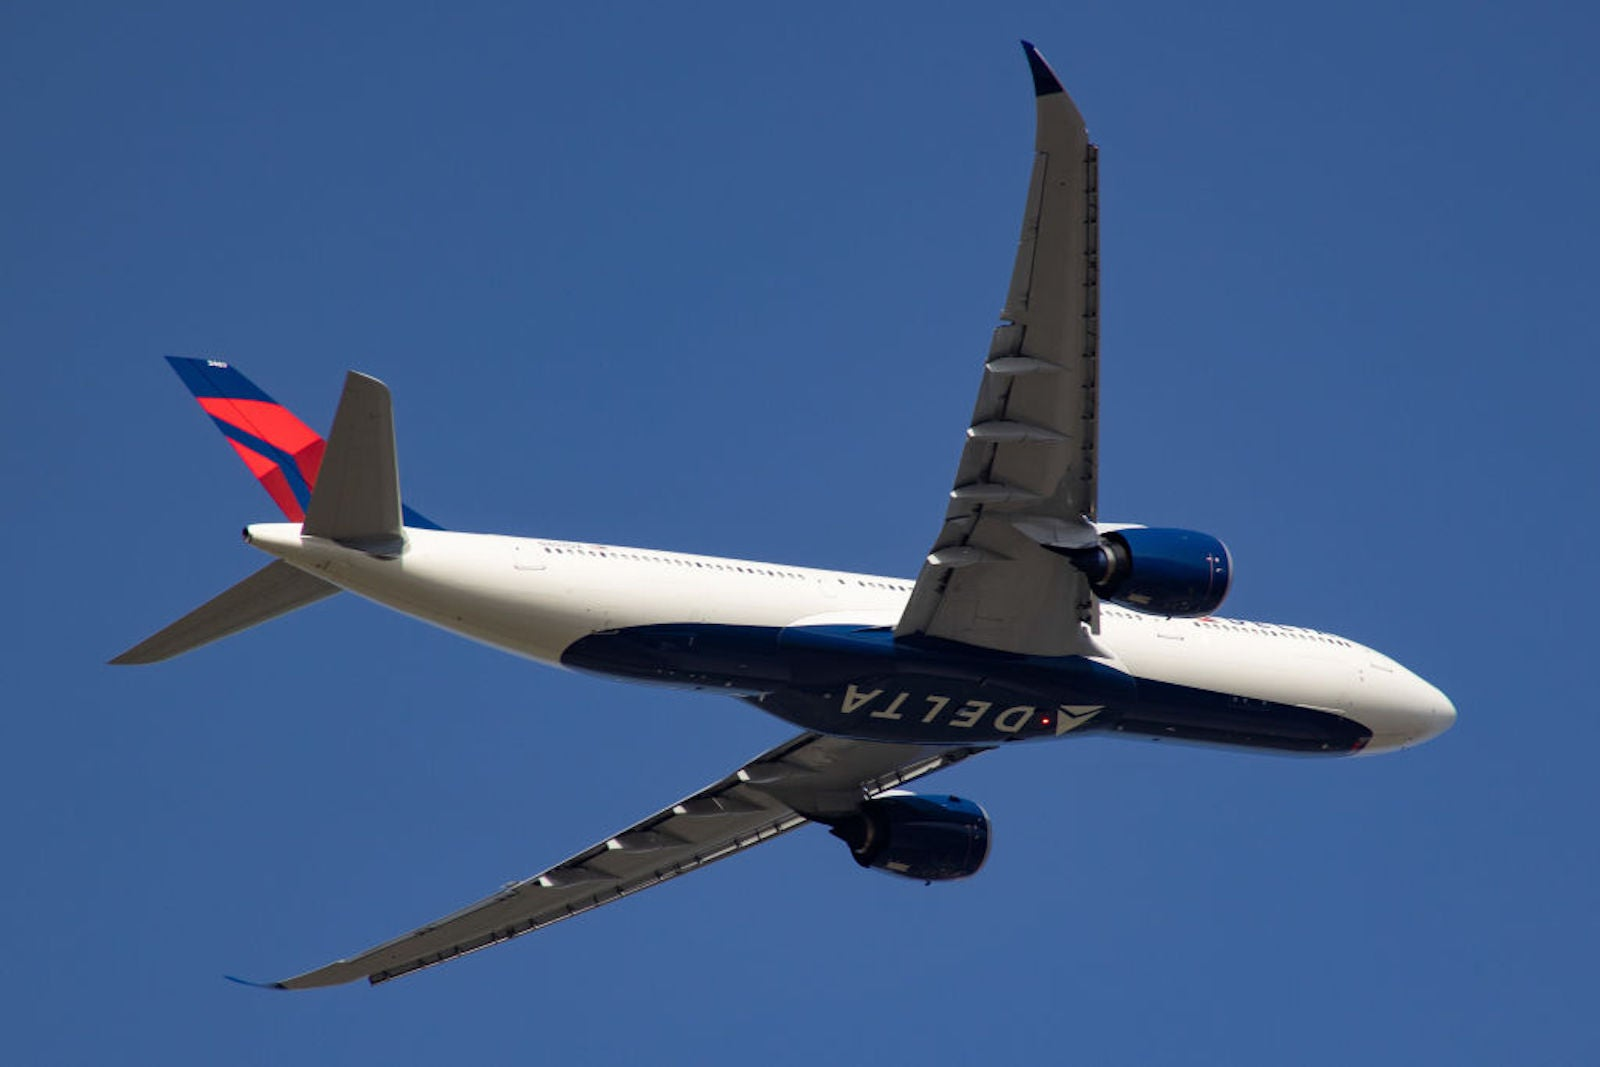 Delta deal alert: Round-trip fares as low as $97 or 6,000 Skymiles - The Points Guy